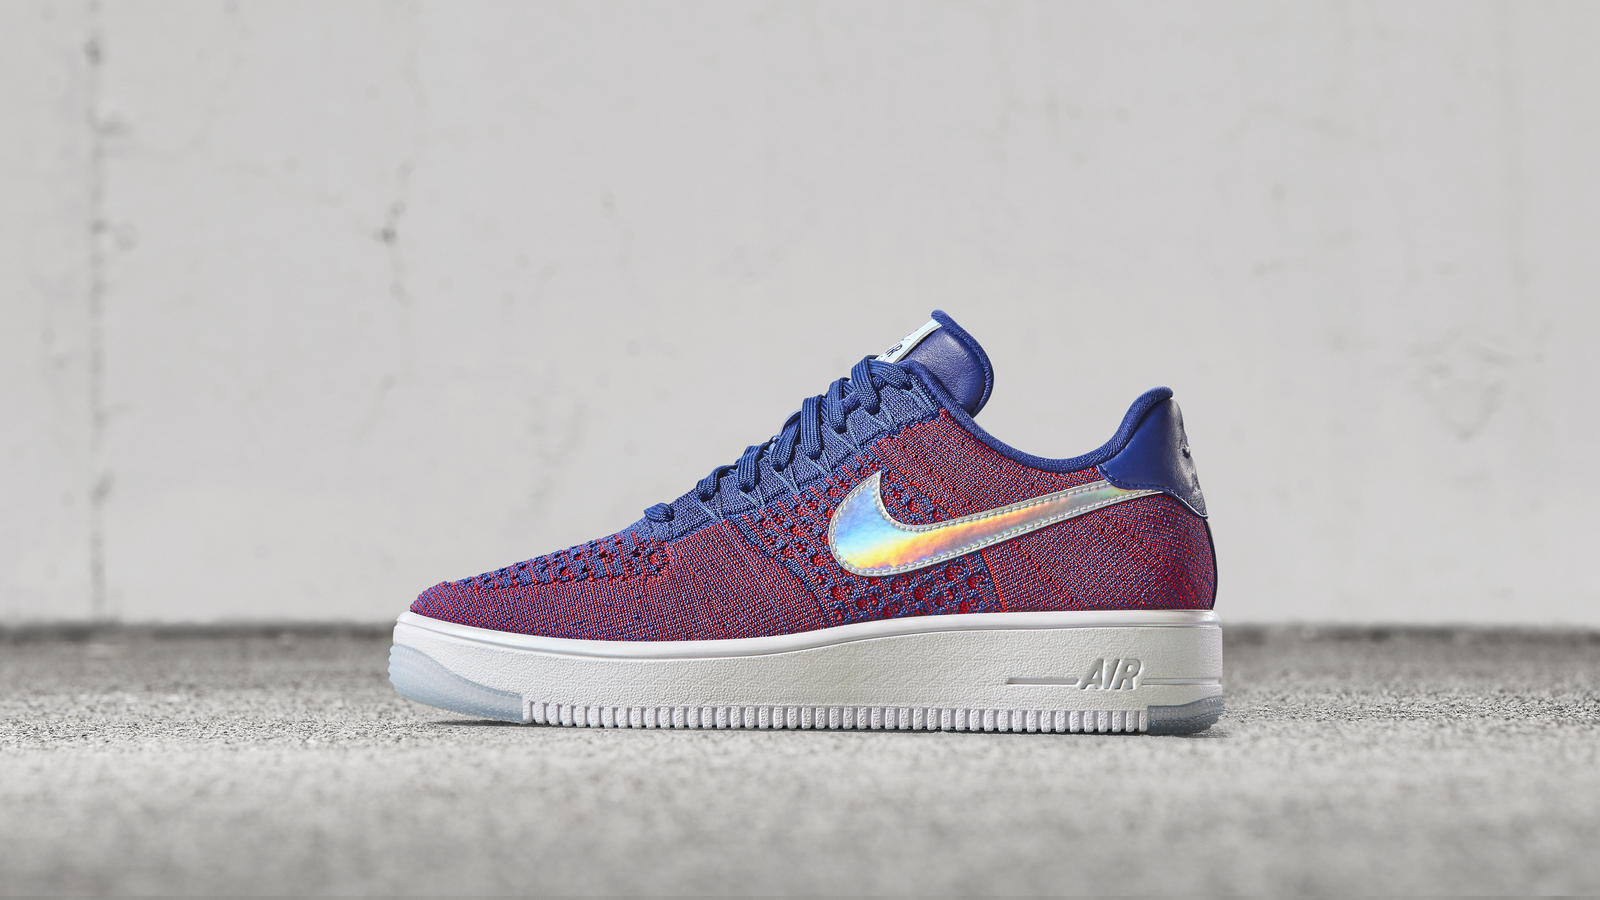 """USA"" Nike Air Force 1 Ultra Flyknit Low"